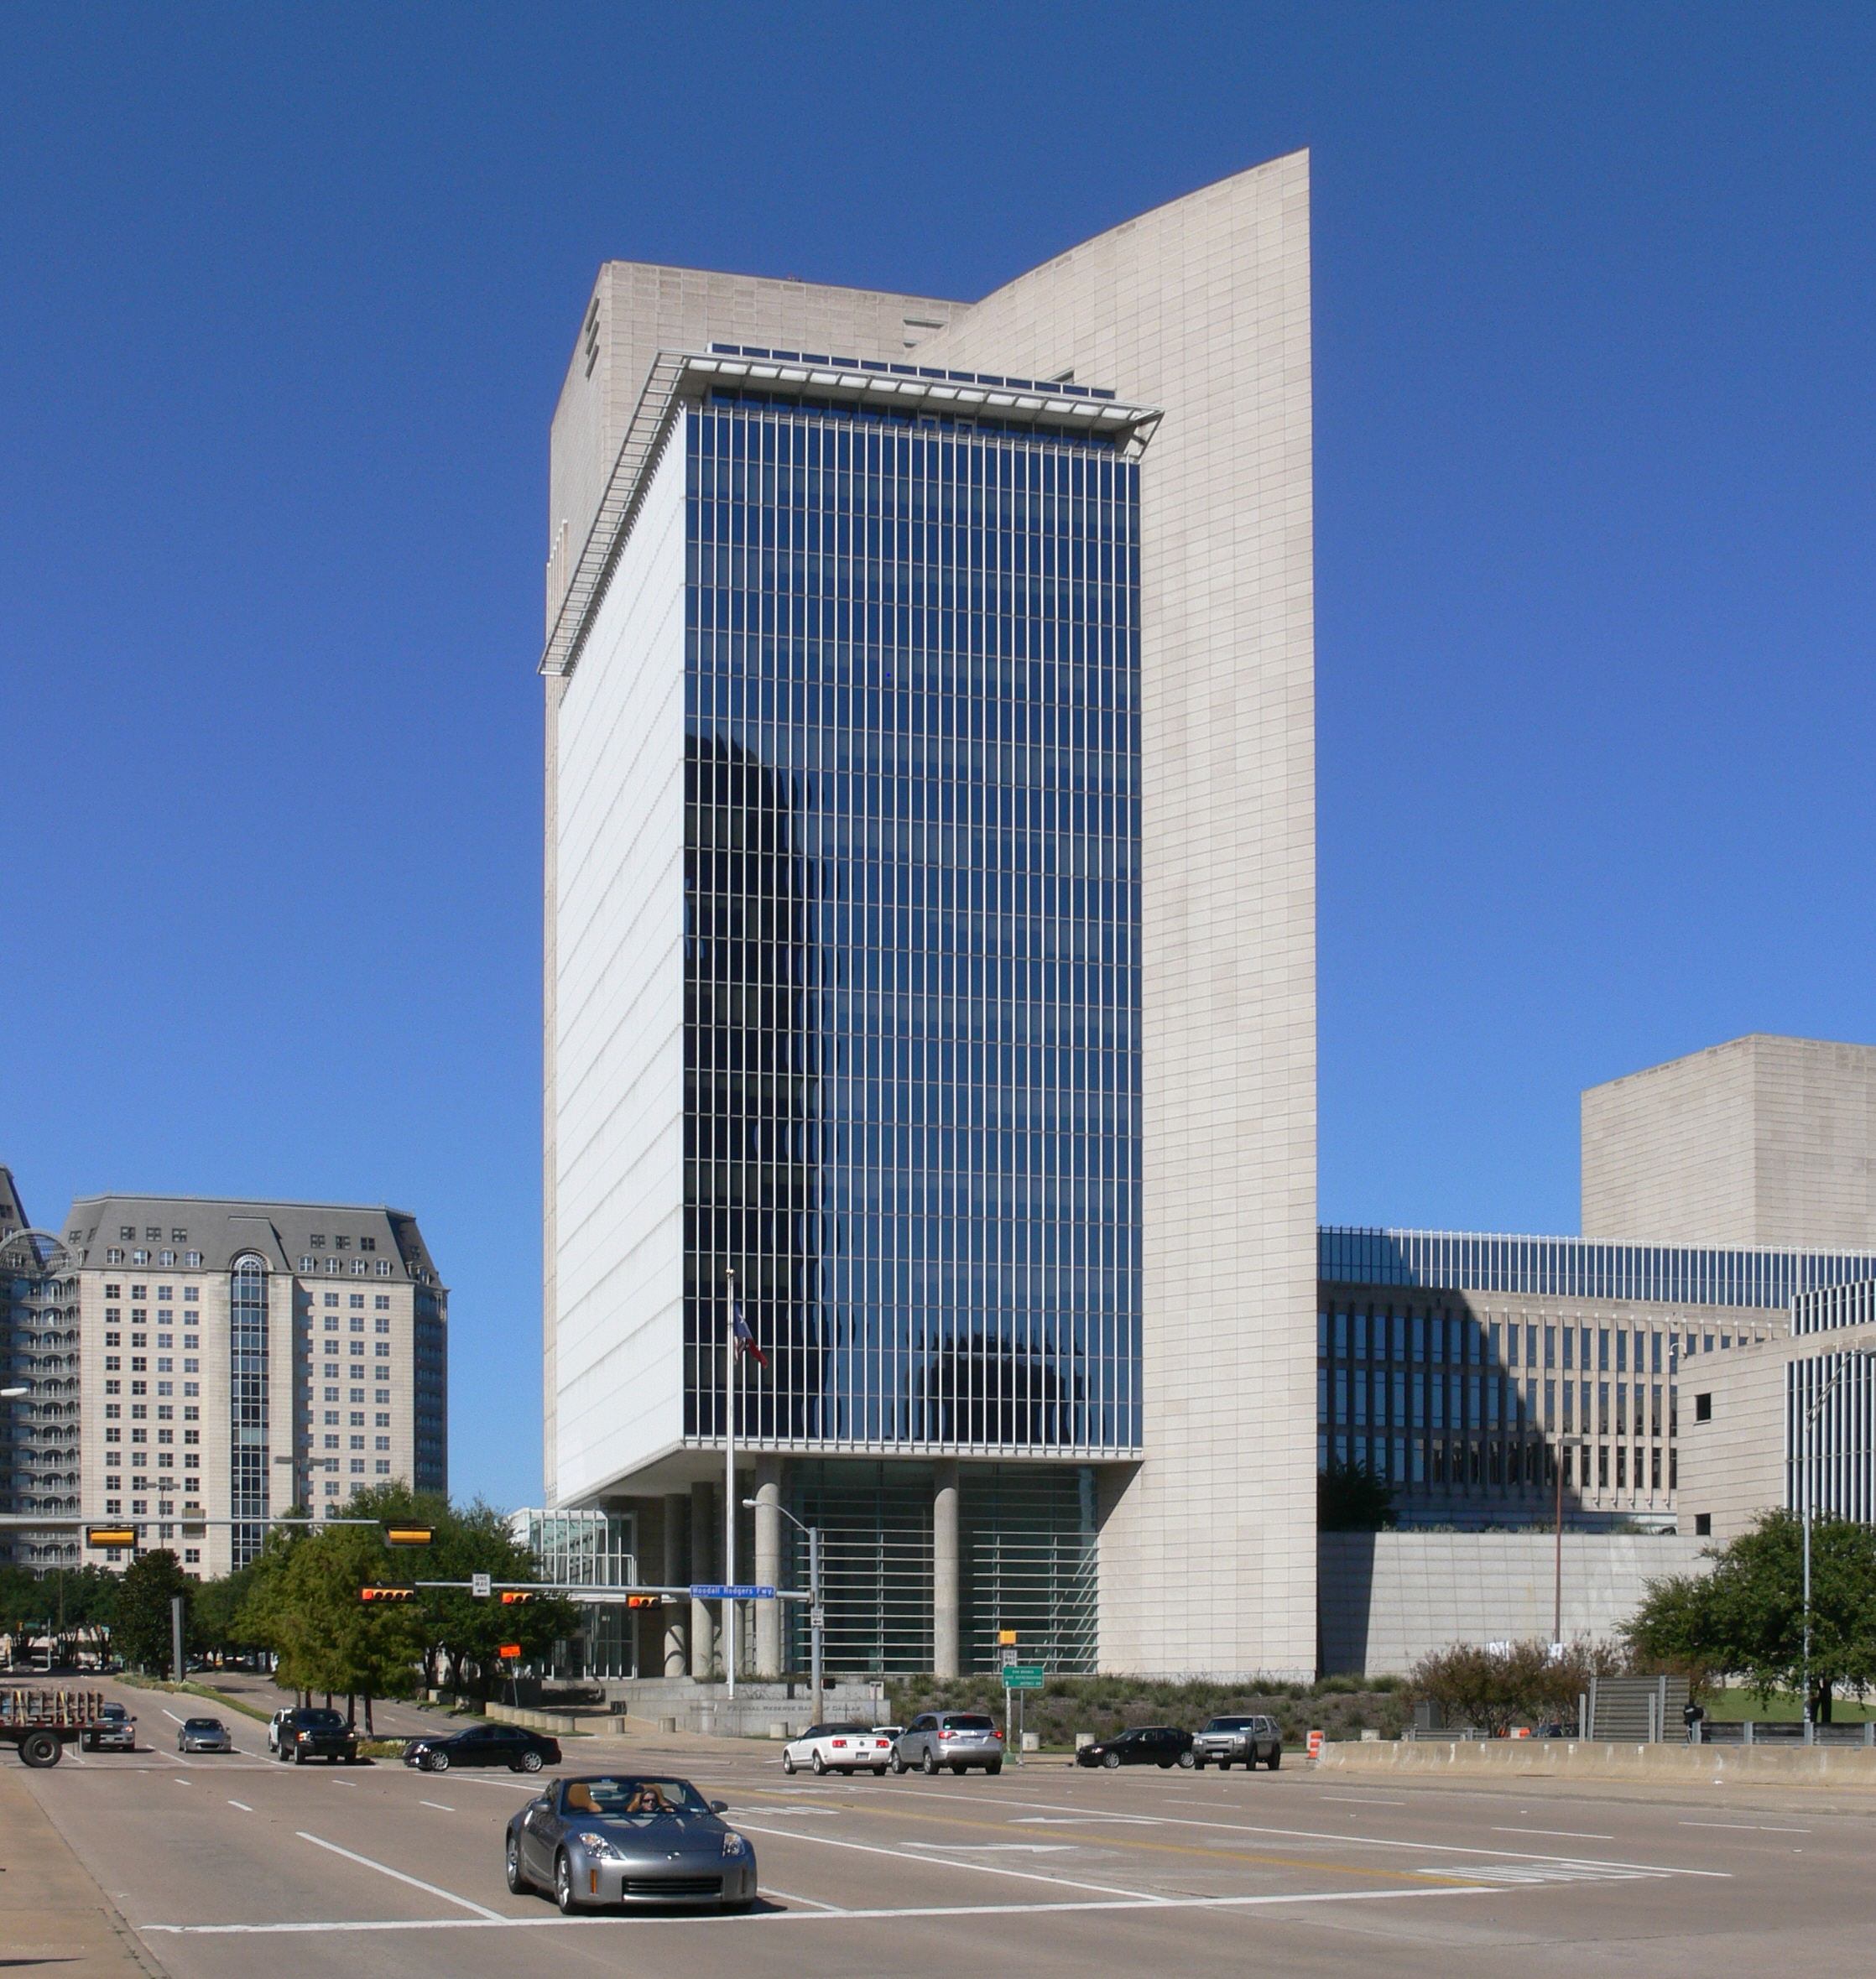 File:Federal Reserve Bank of Dallas 1 jpg - Wikimedia Commons